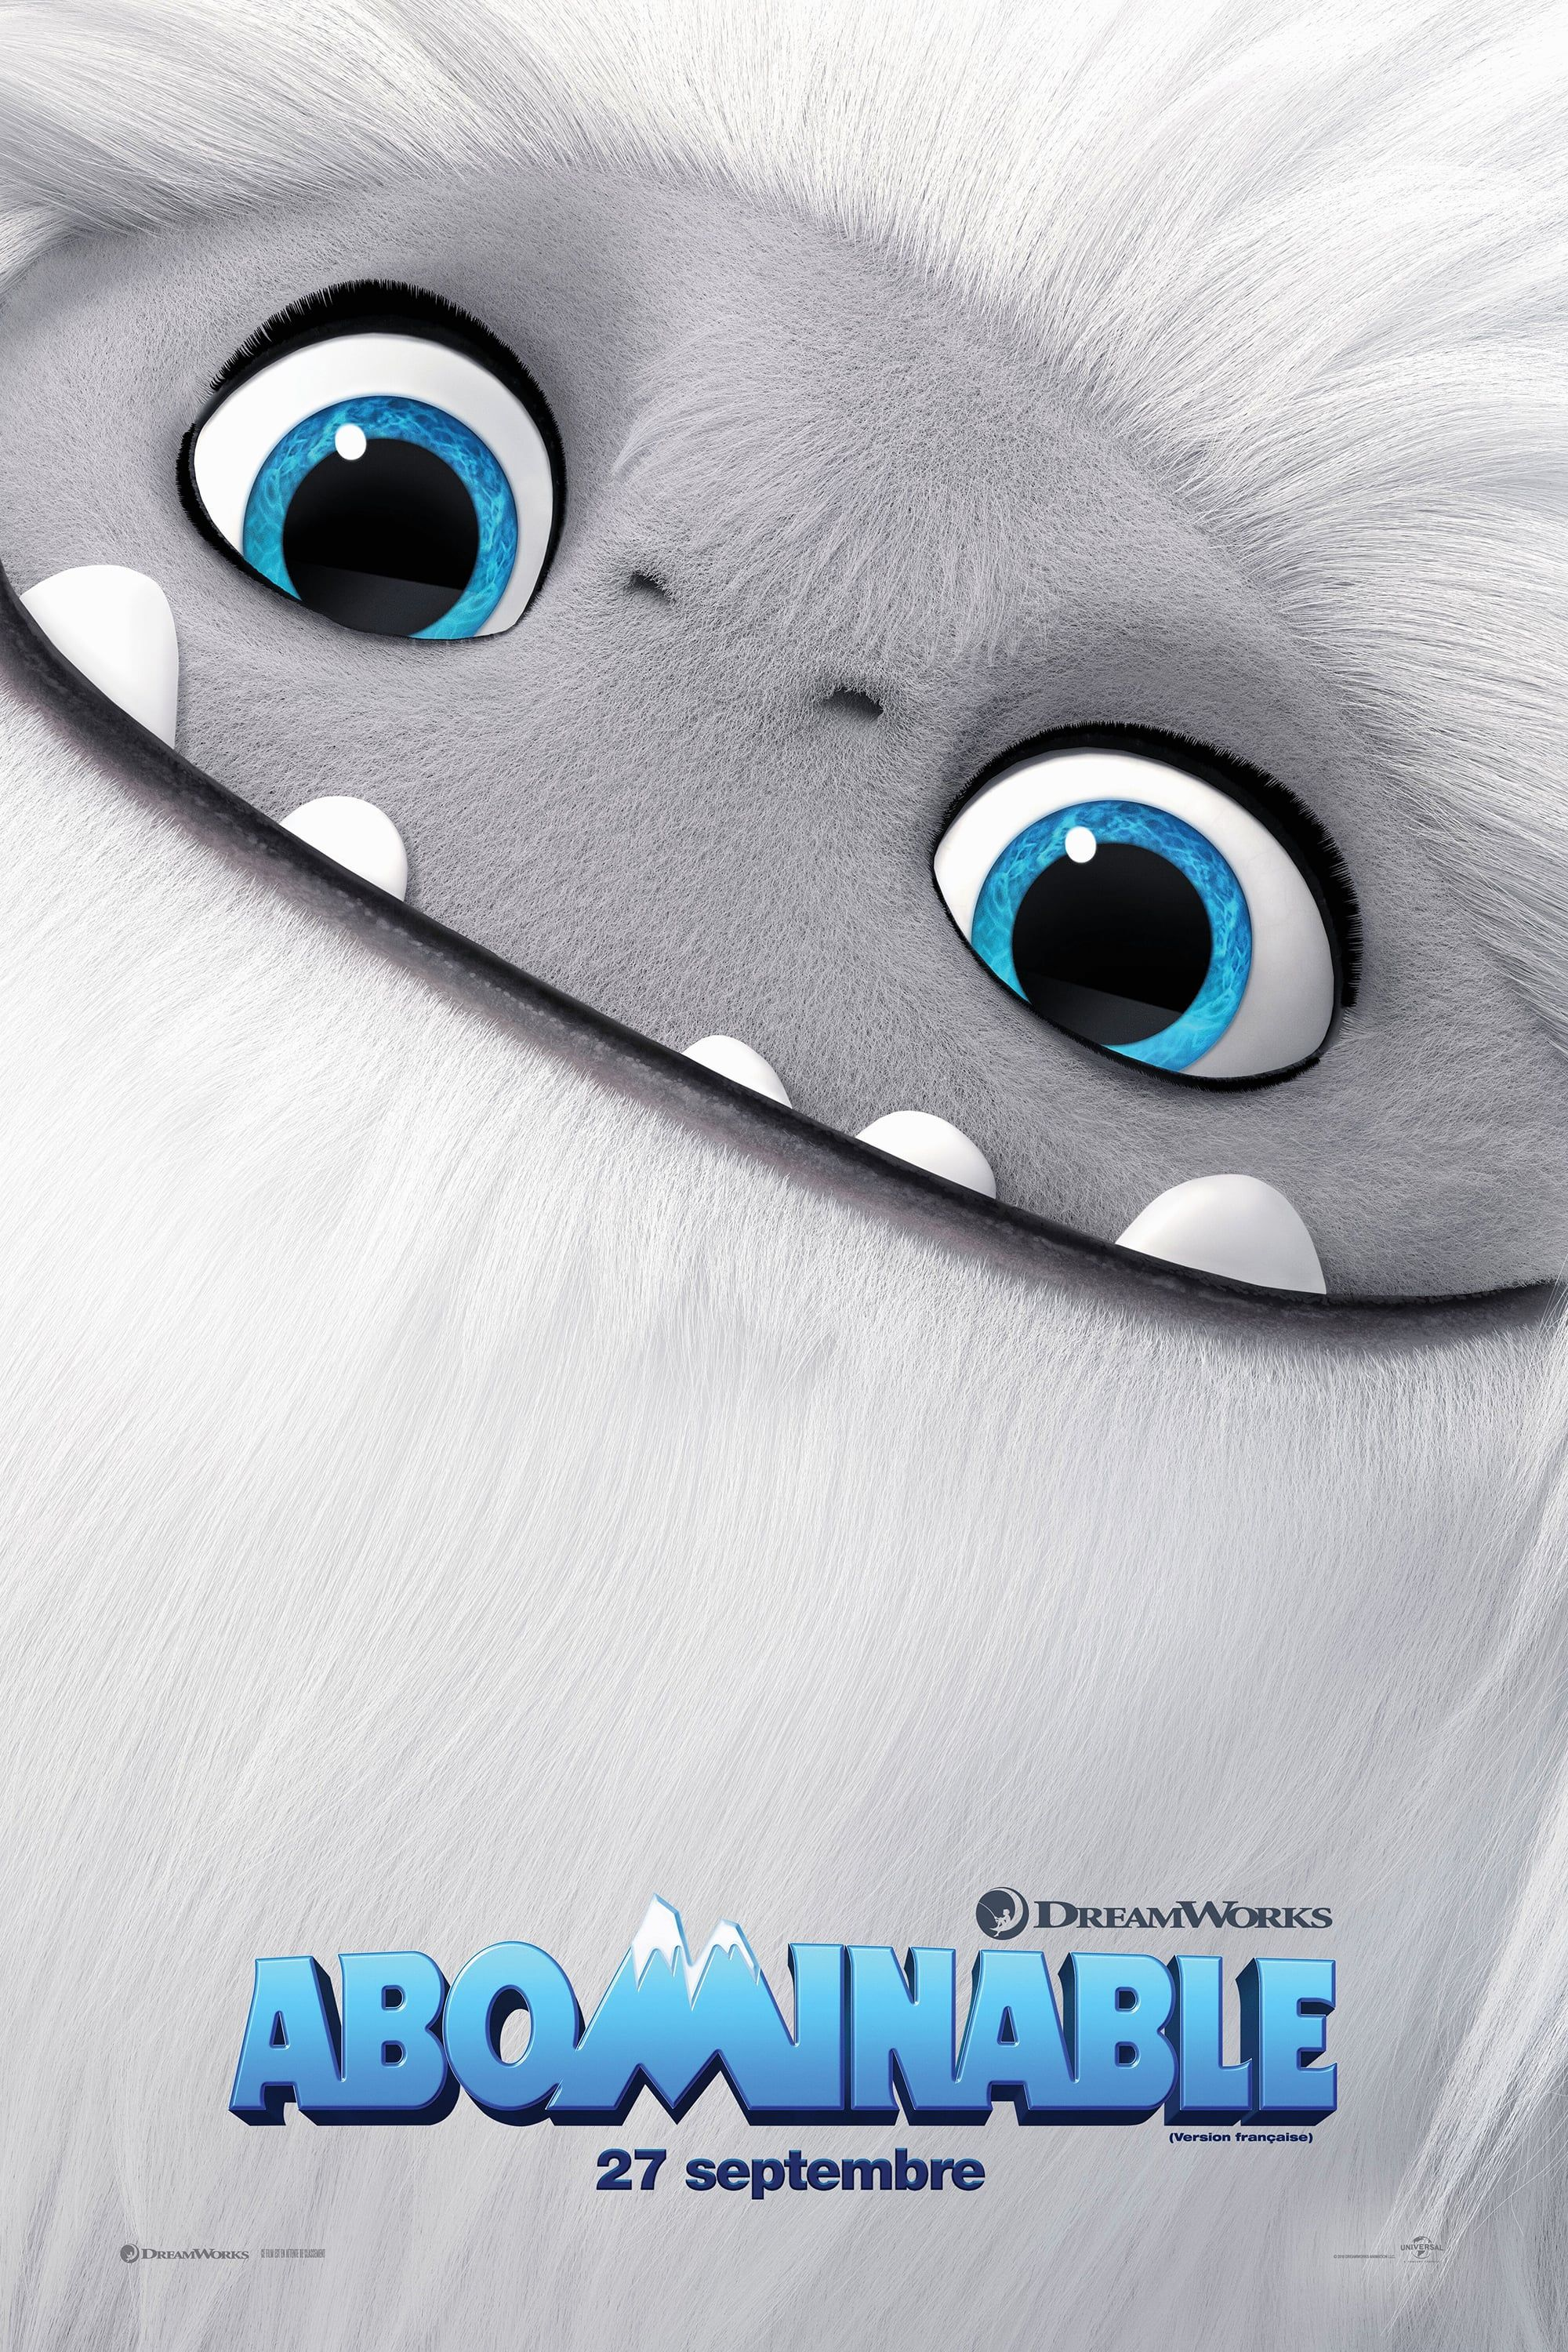 Abominable 2019 Full HD MOVIE in OFFICIAL